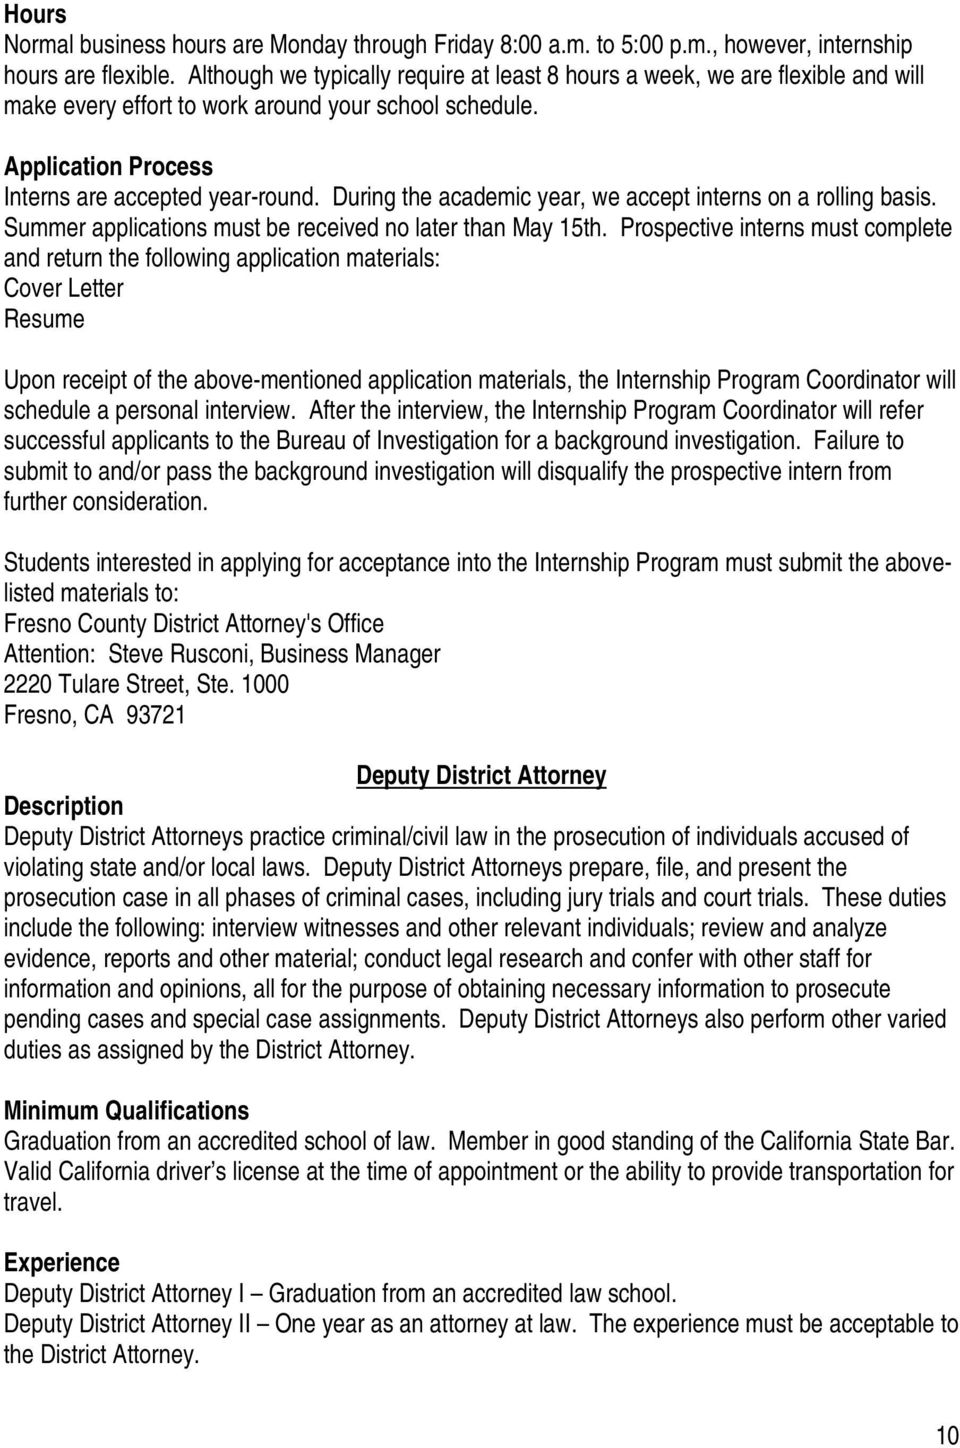 HIRING PRACTICES CALIFORNIA DISTRICT ATTORNEY OFFICES. UC Hastings ...